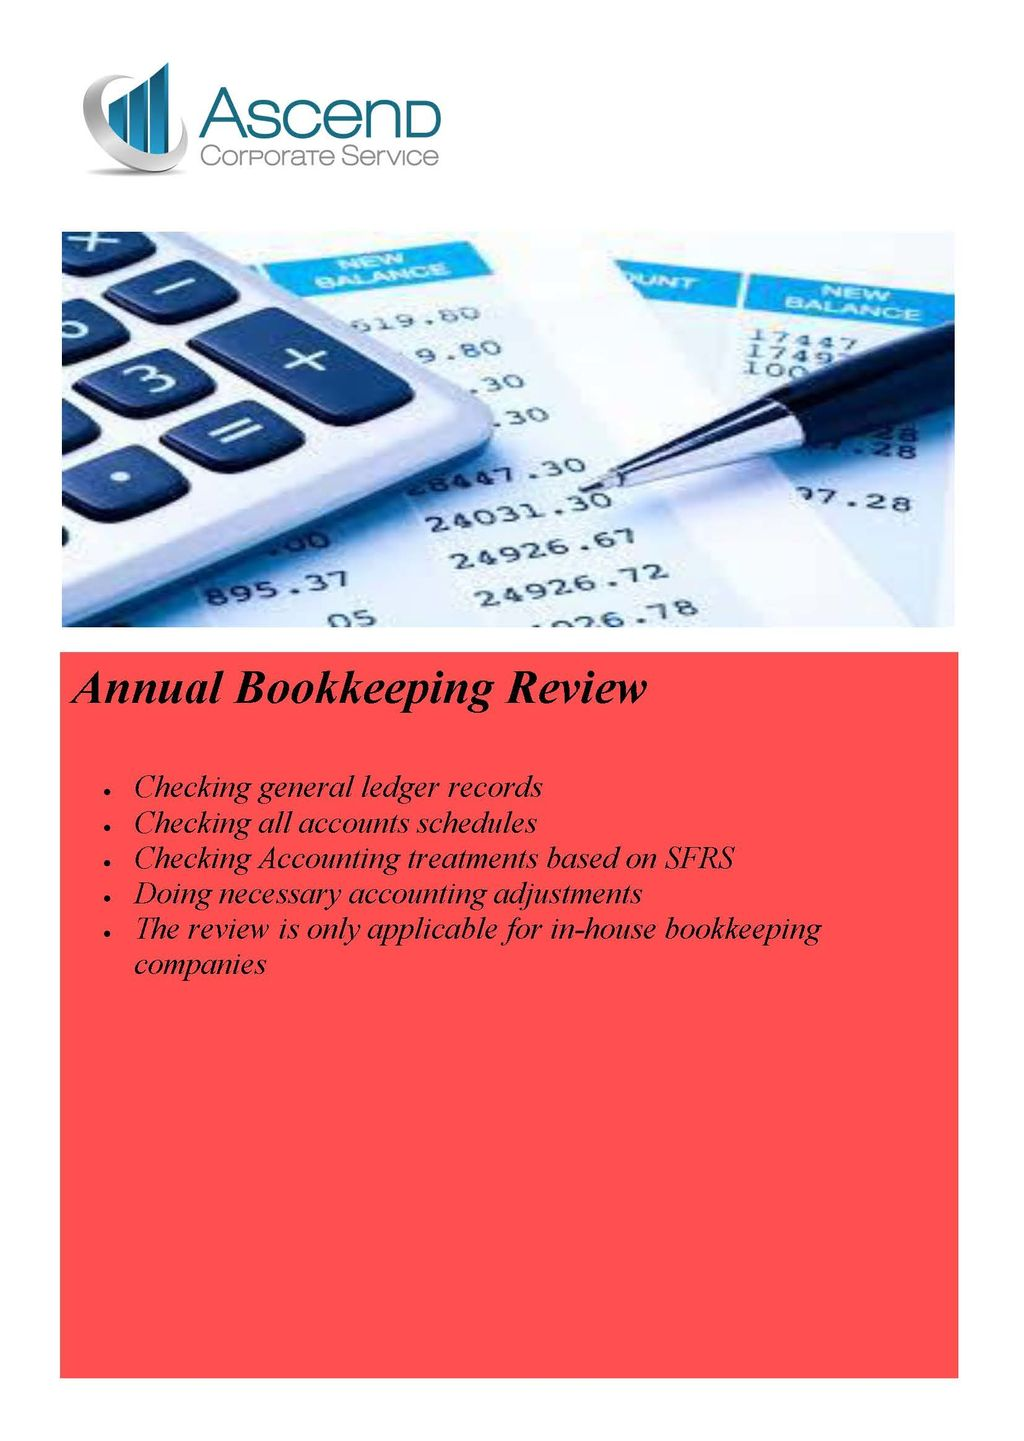 E-Commerce - Bookkeeping review.jpg